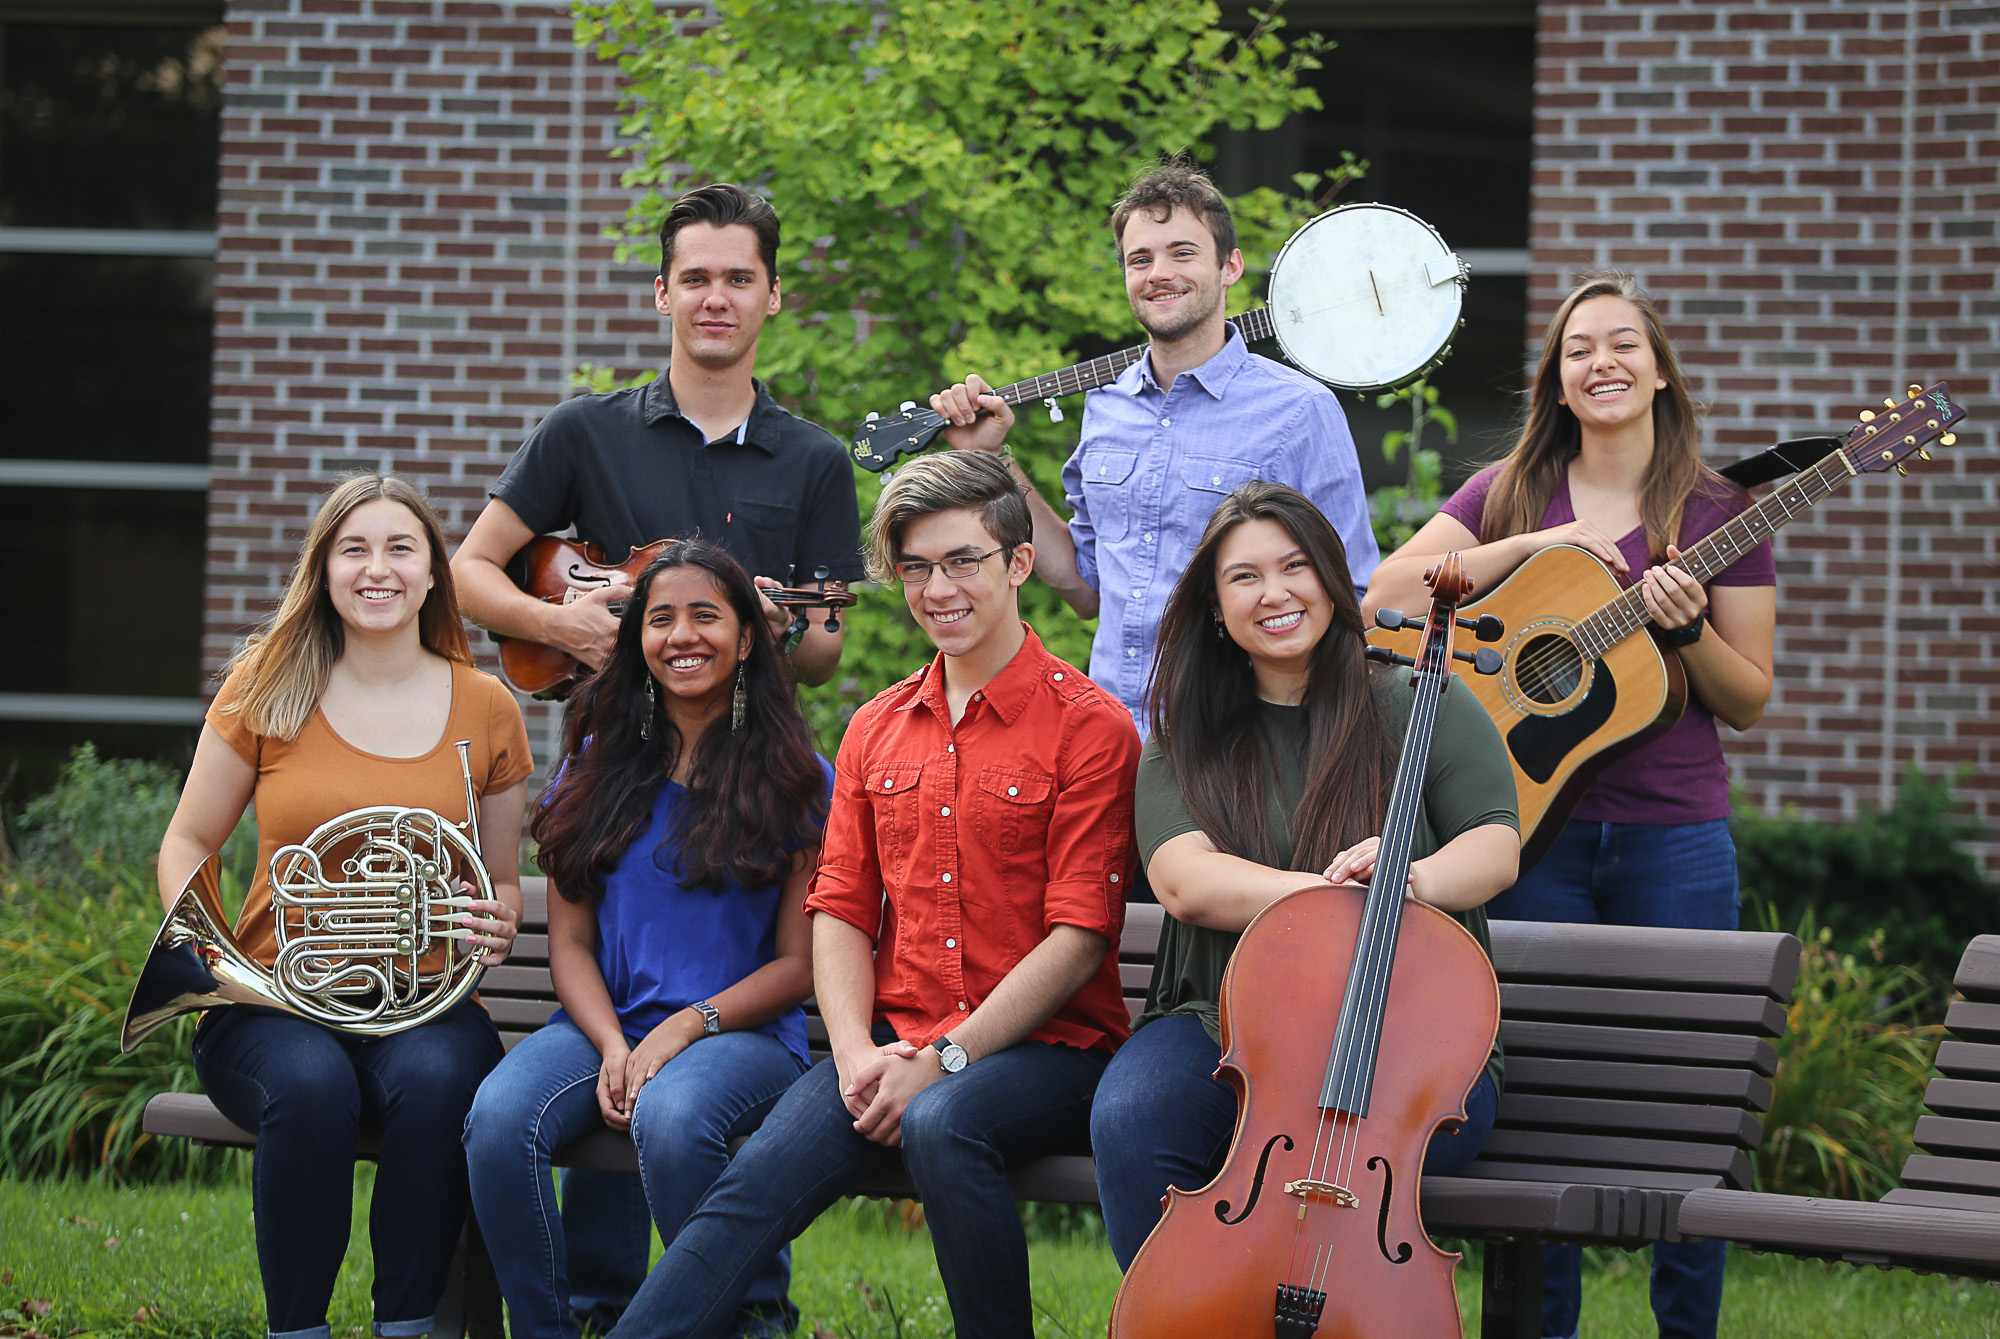 Members of the Parables ensemble pose for a picture with their instruments